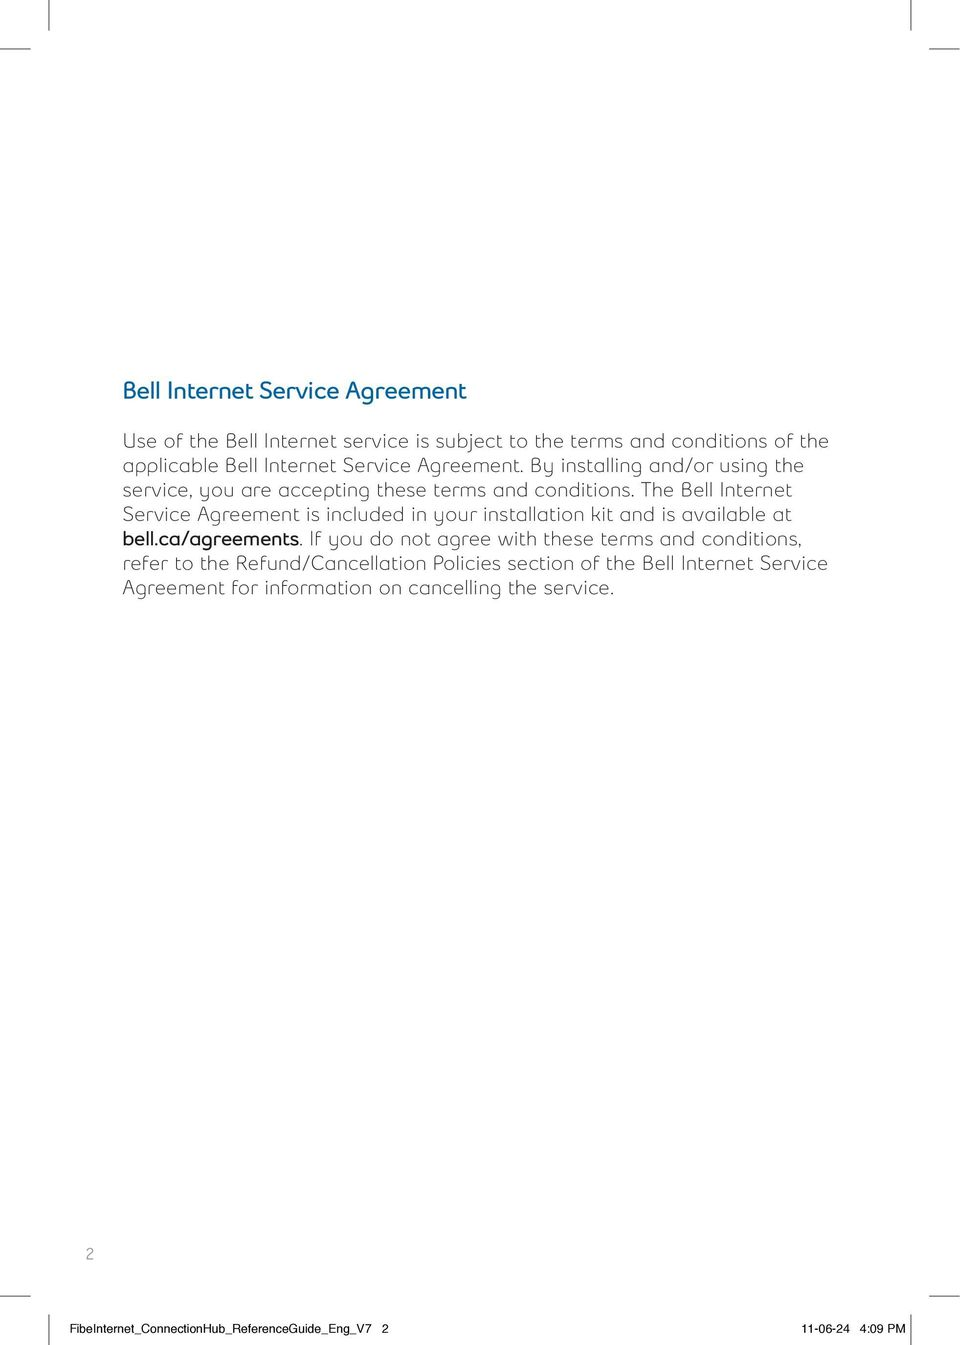 The Bell Internet Service Agreement is included in your installation kit and is available at bell.ca/agreements.